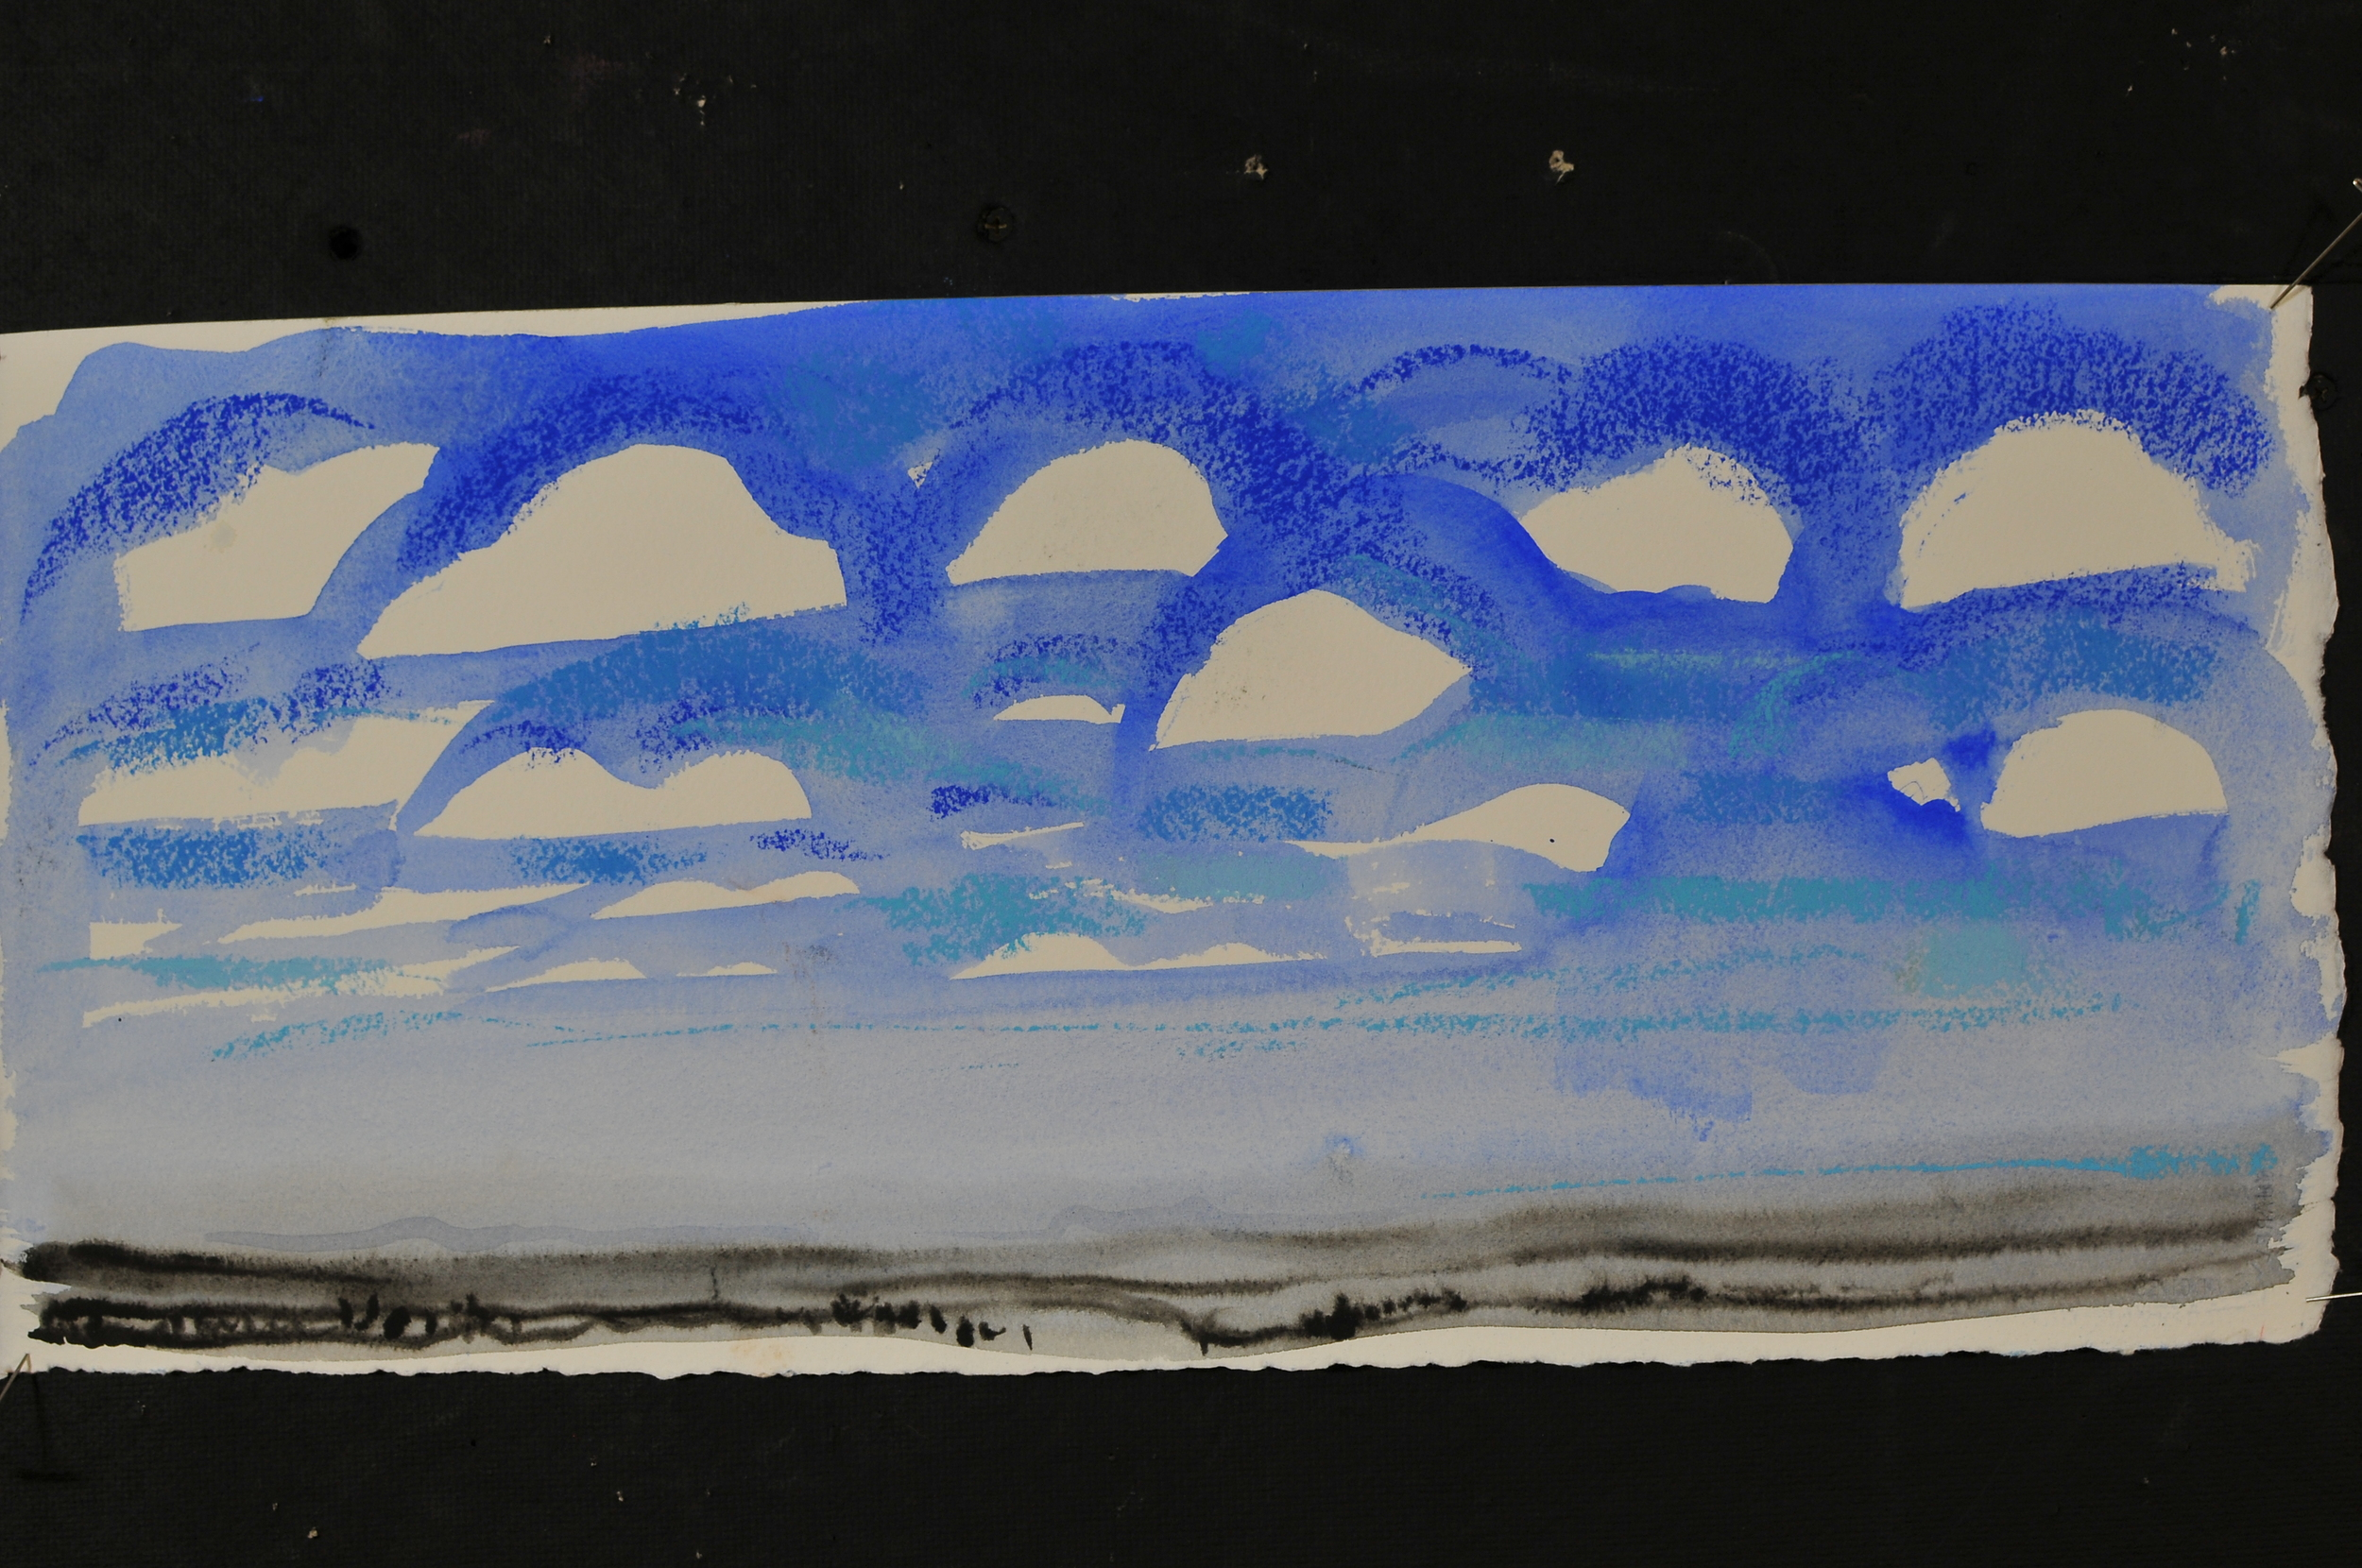 """South Dakota Sky - 2009 - Watercolor and pastel on paper - 10 x 23"""" image size"""